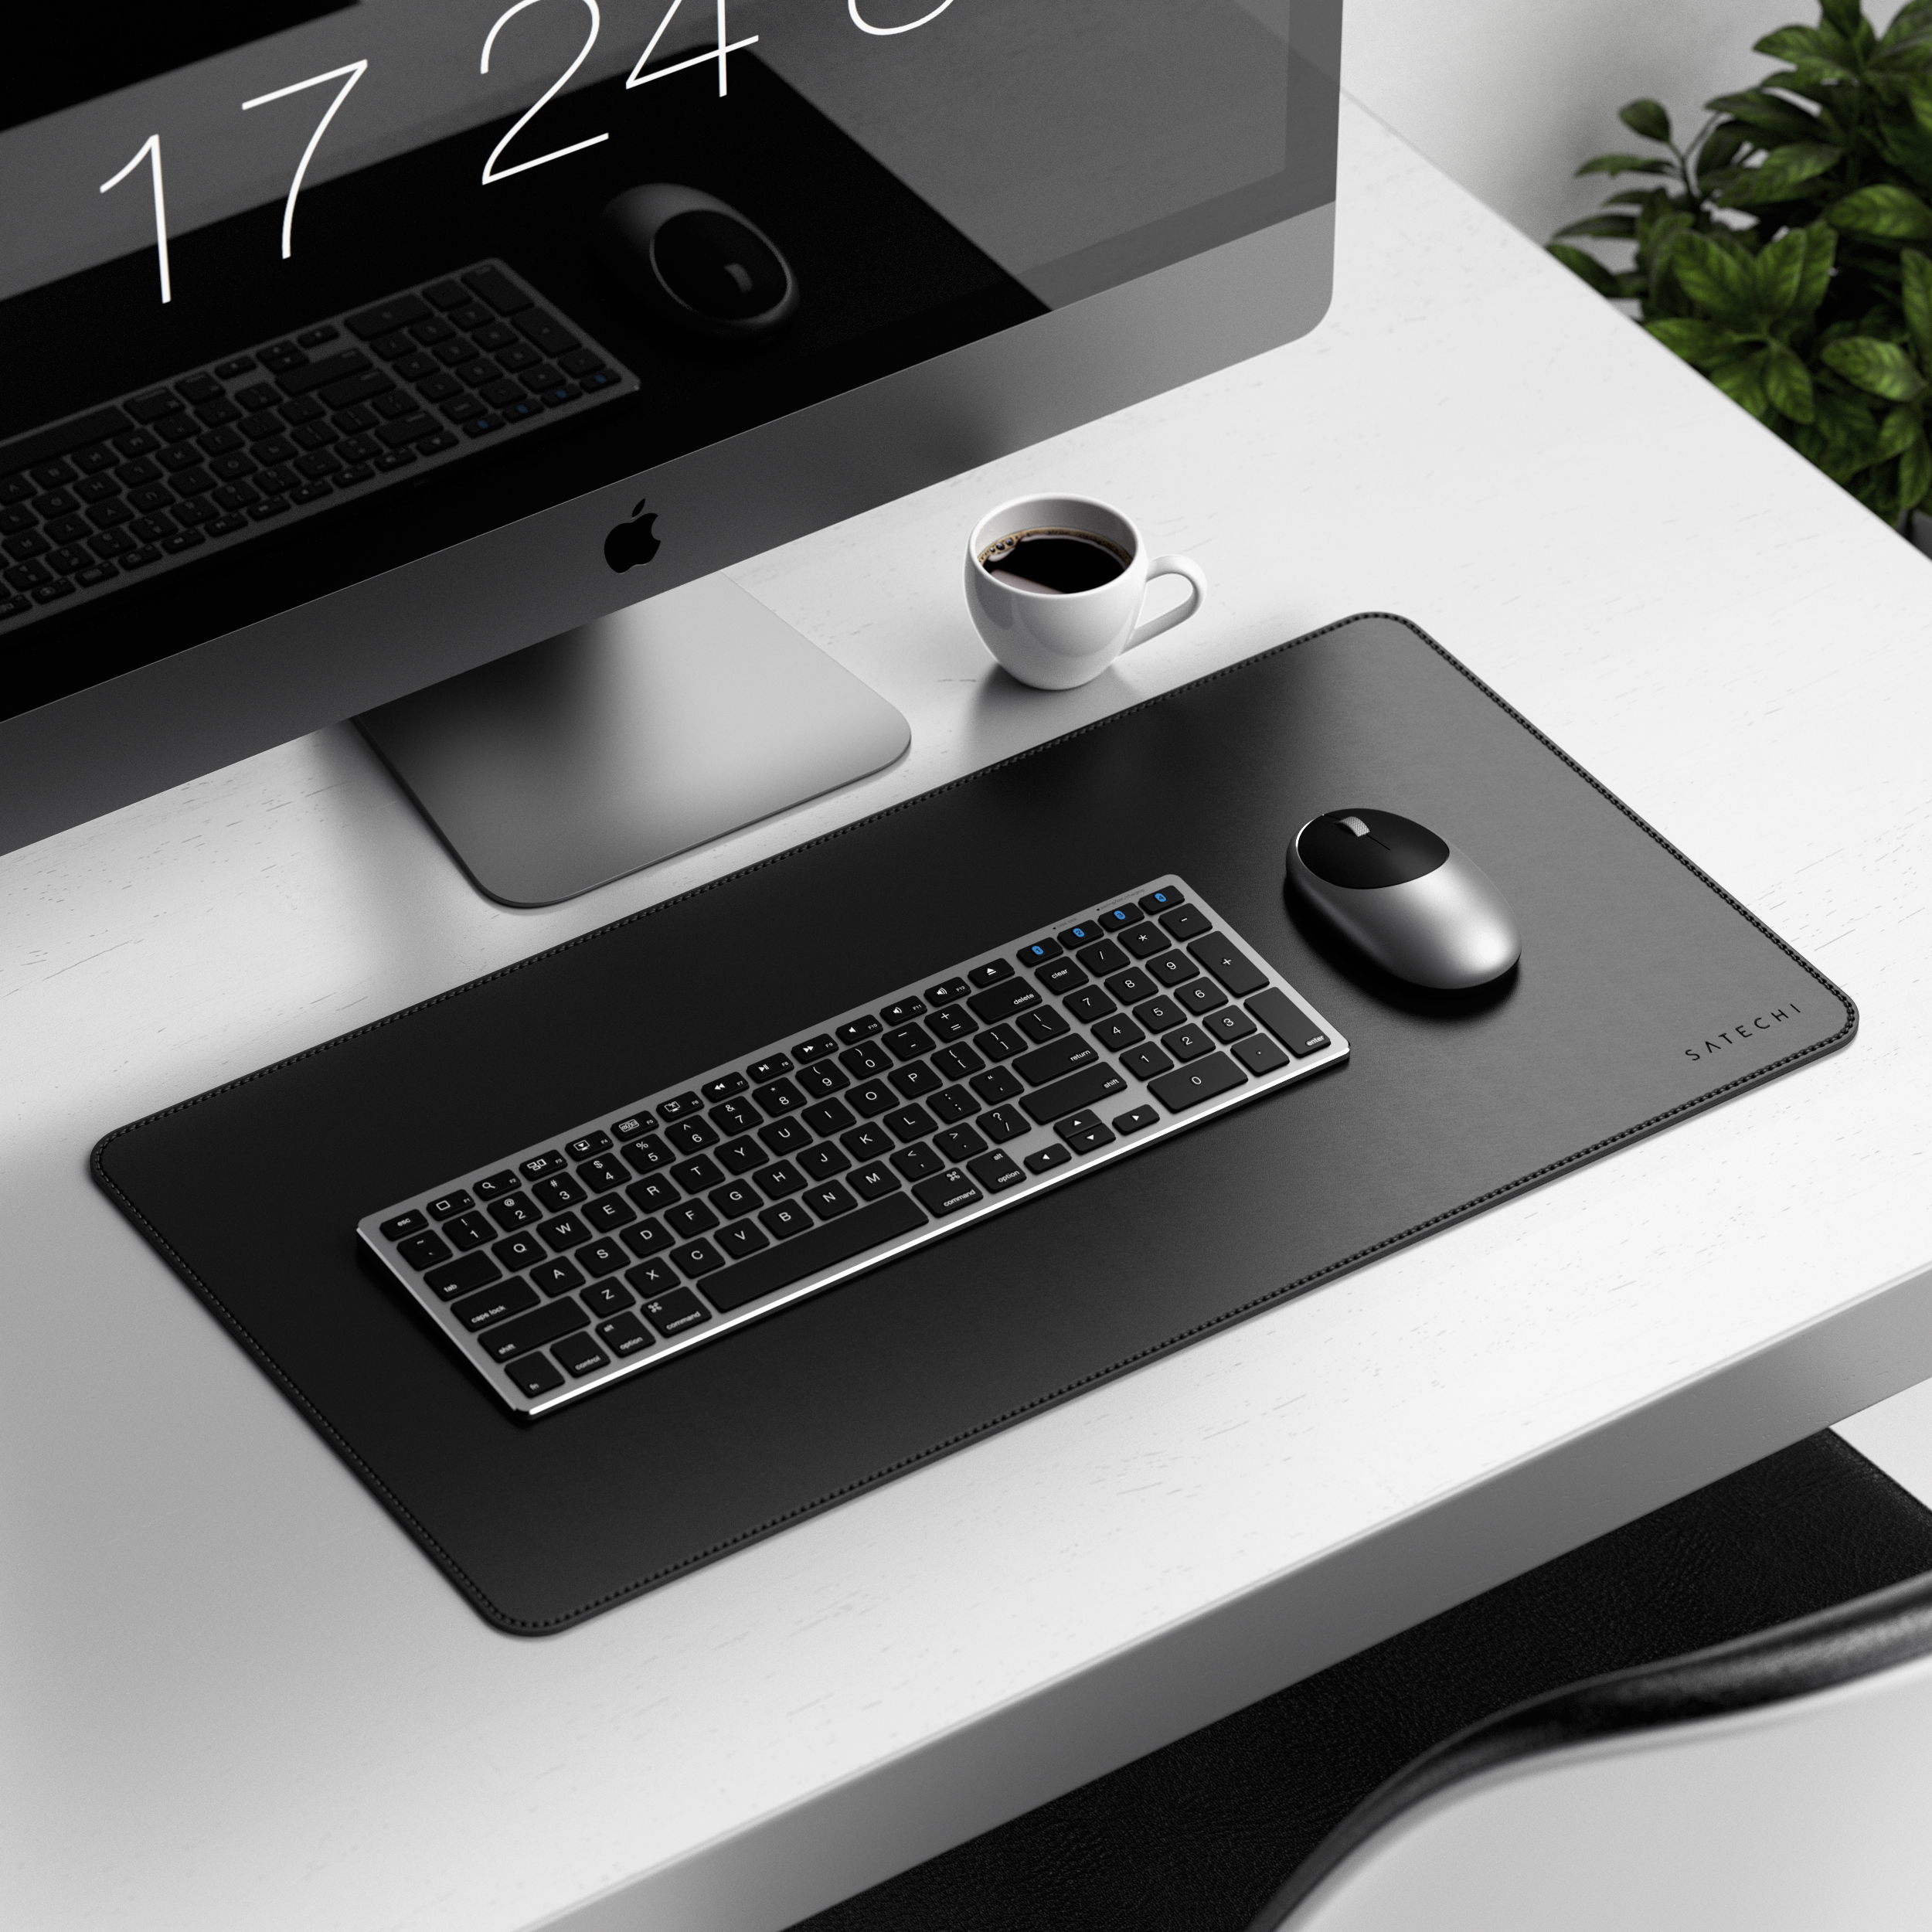 Satechi launches aluminum wireless mouse with USB-C, affordable faux